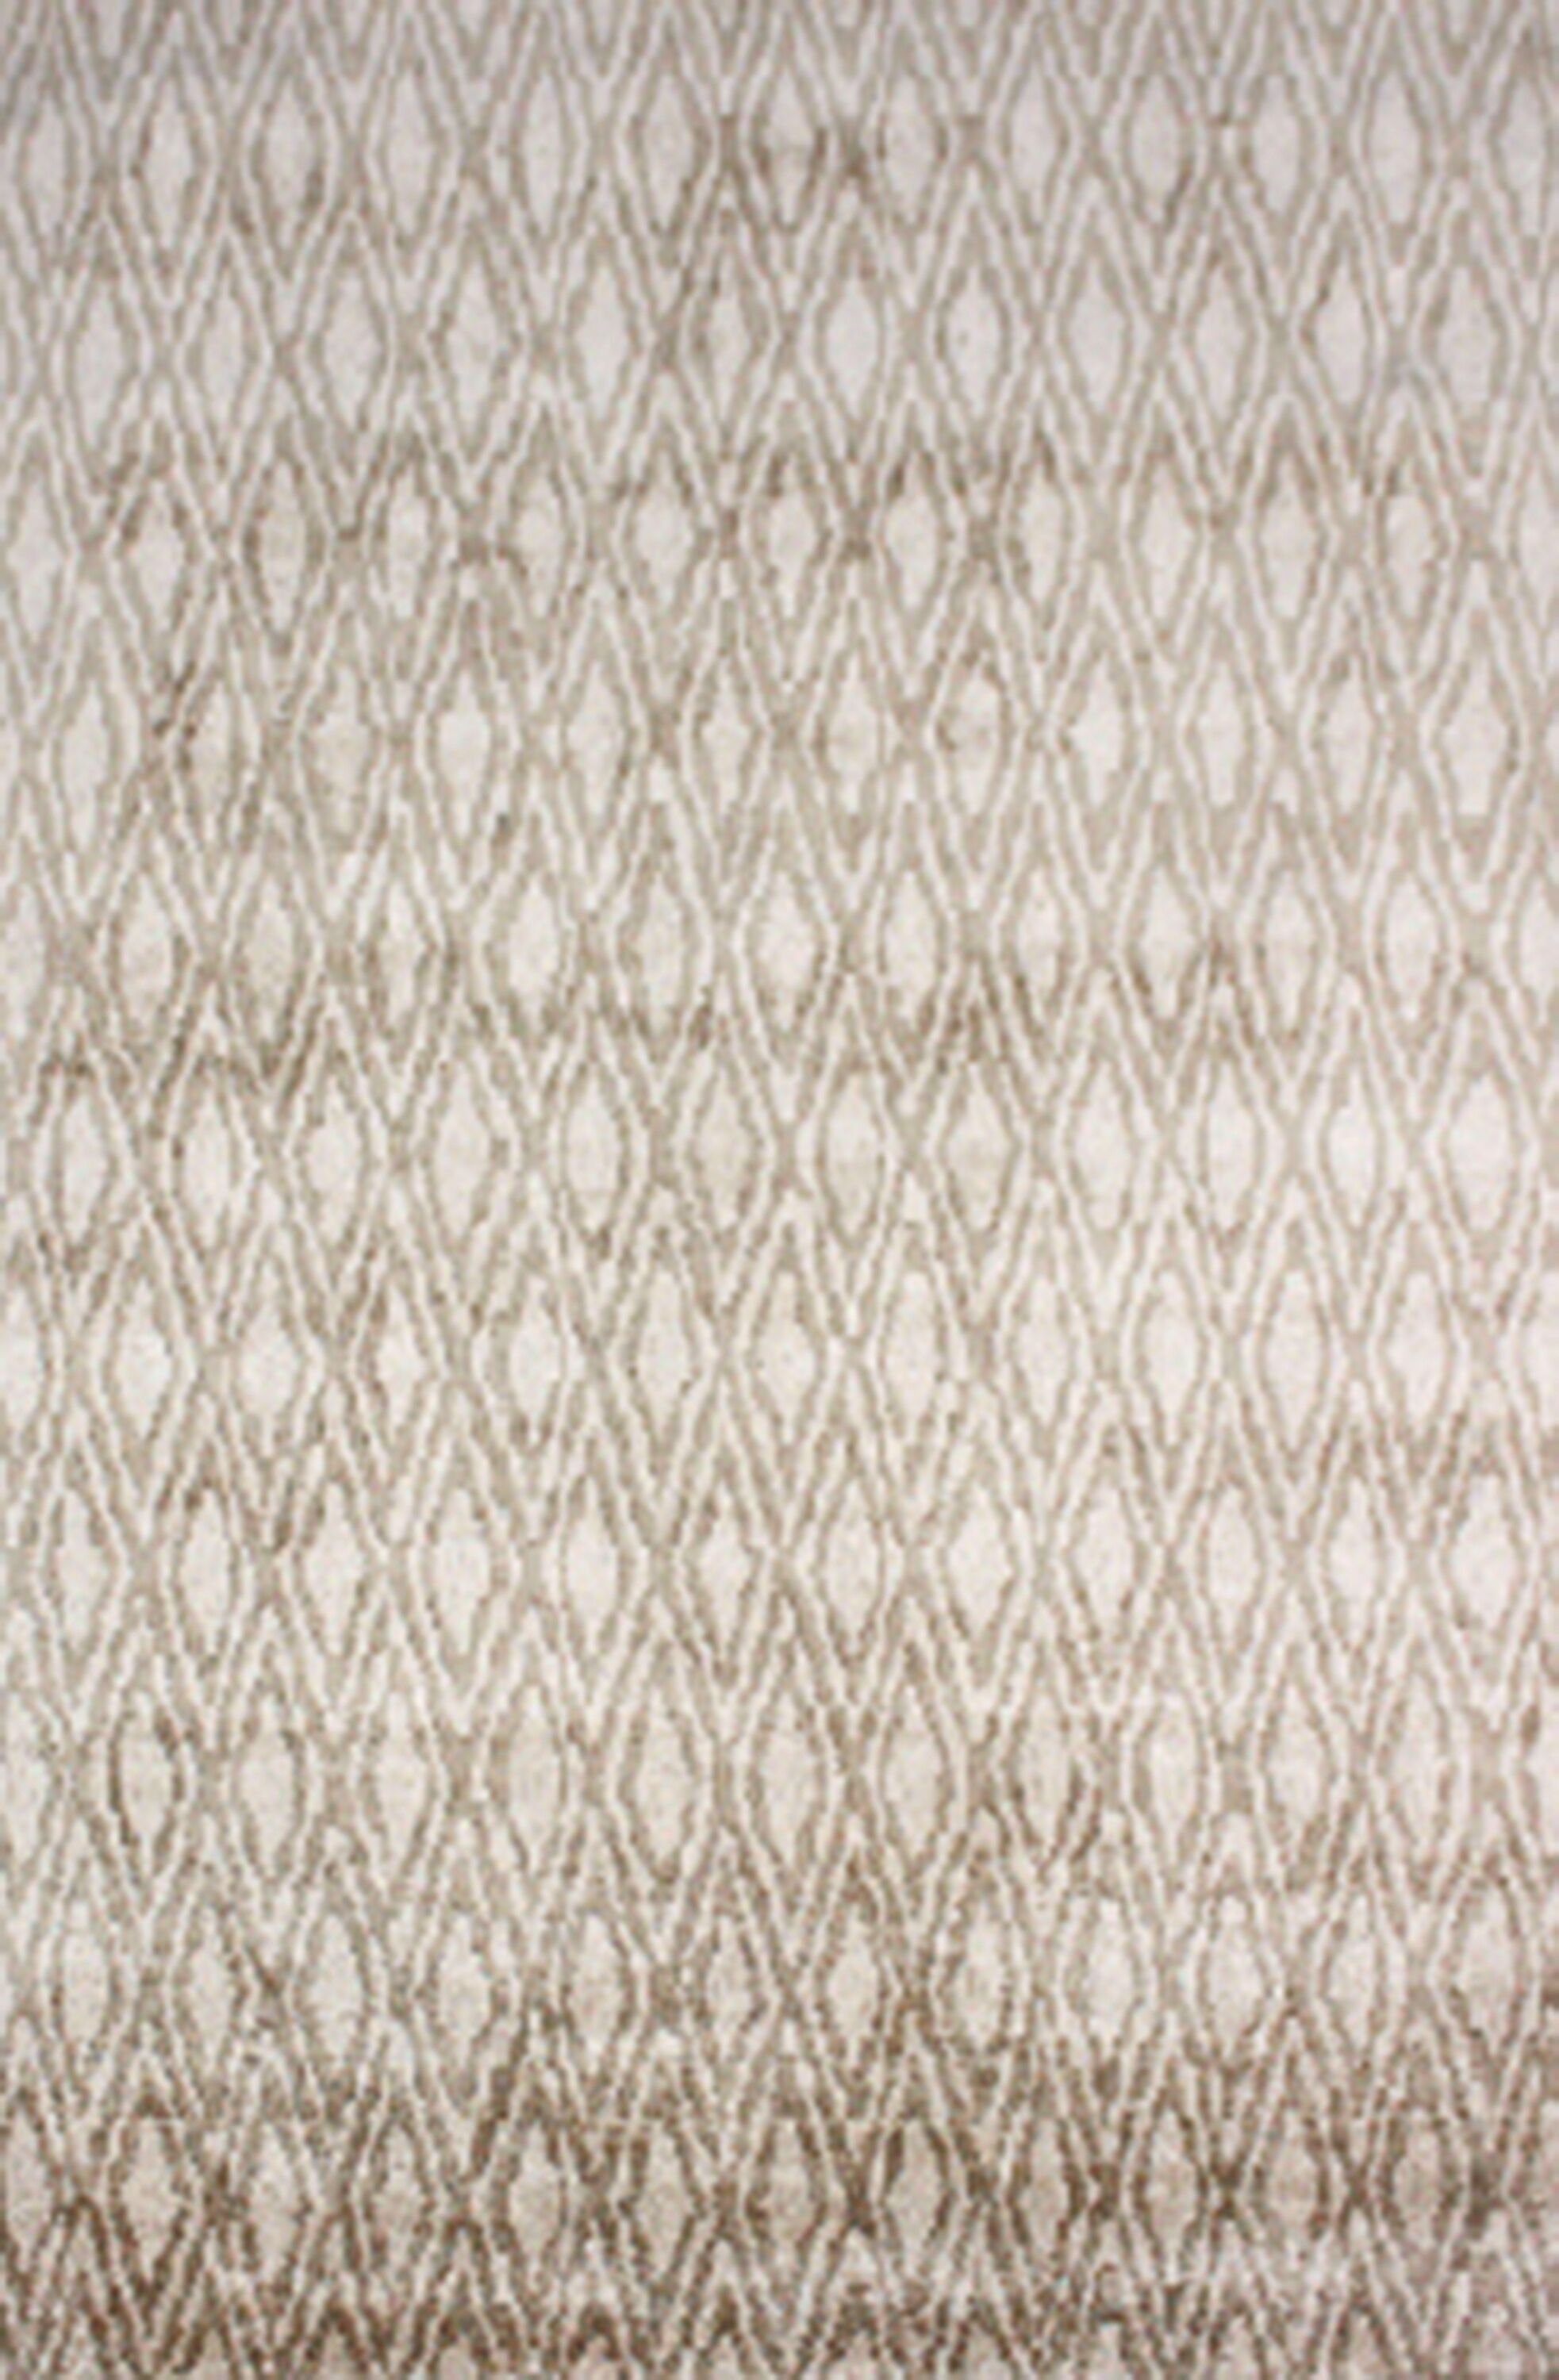 Brashear Hand-Woven Ivory Area Rug Rug Size: Rectangle 12' x 15'